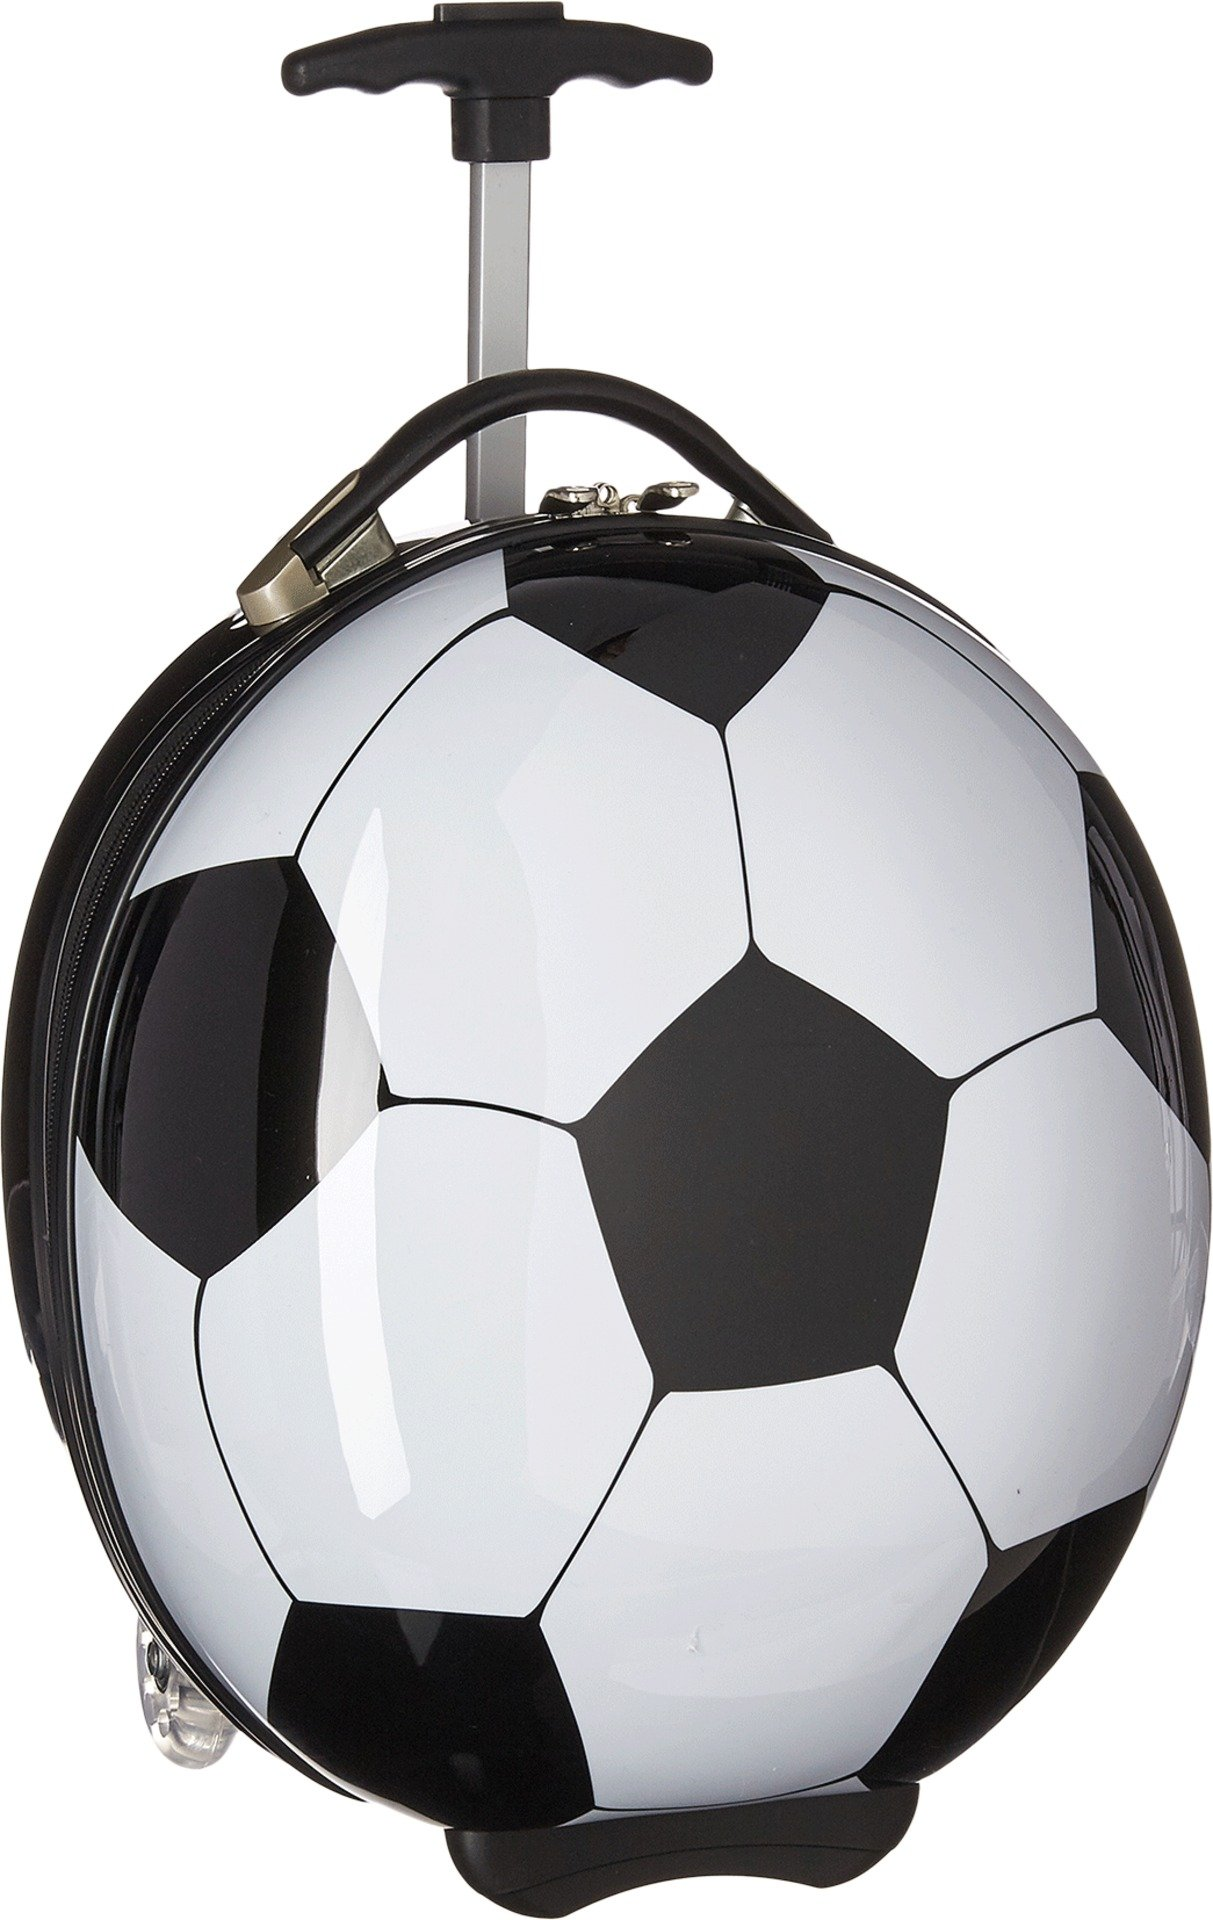 Heys America Unisex Sport Kids Luggage Soccer Ball Luggage